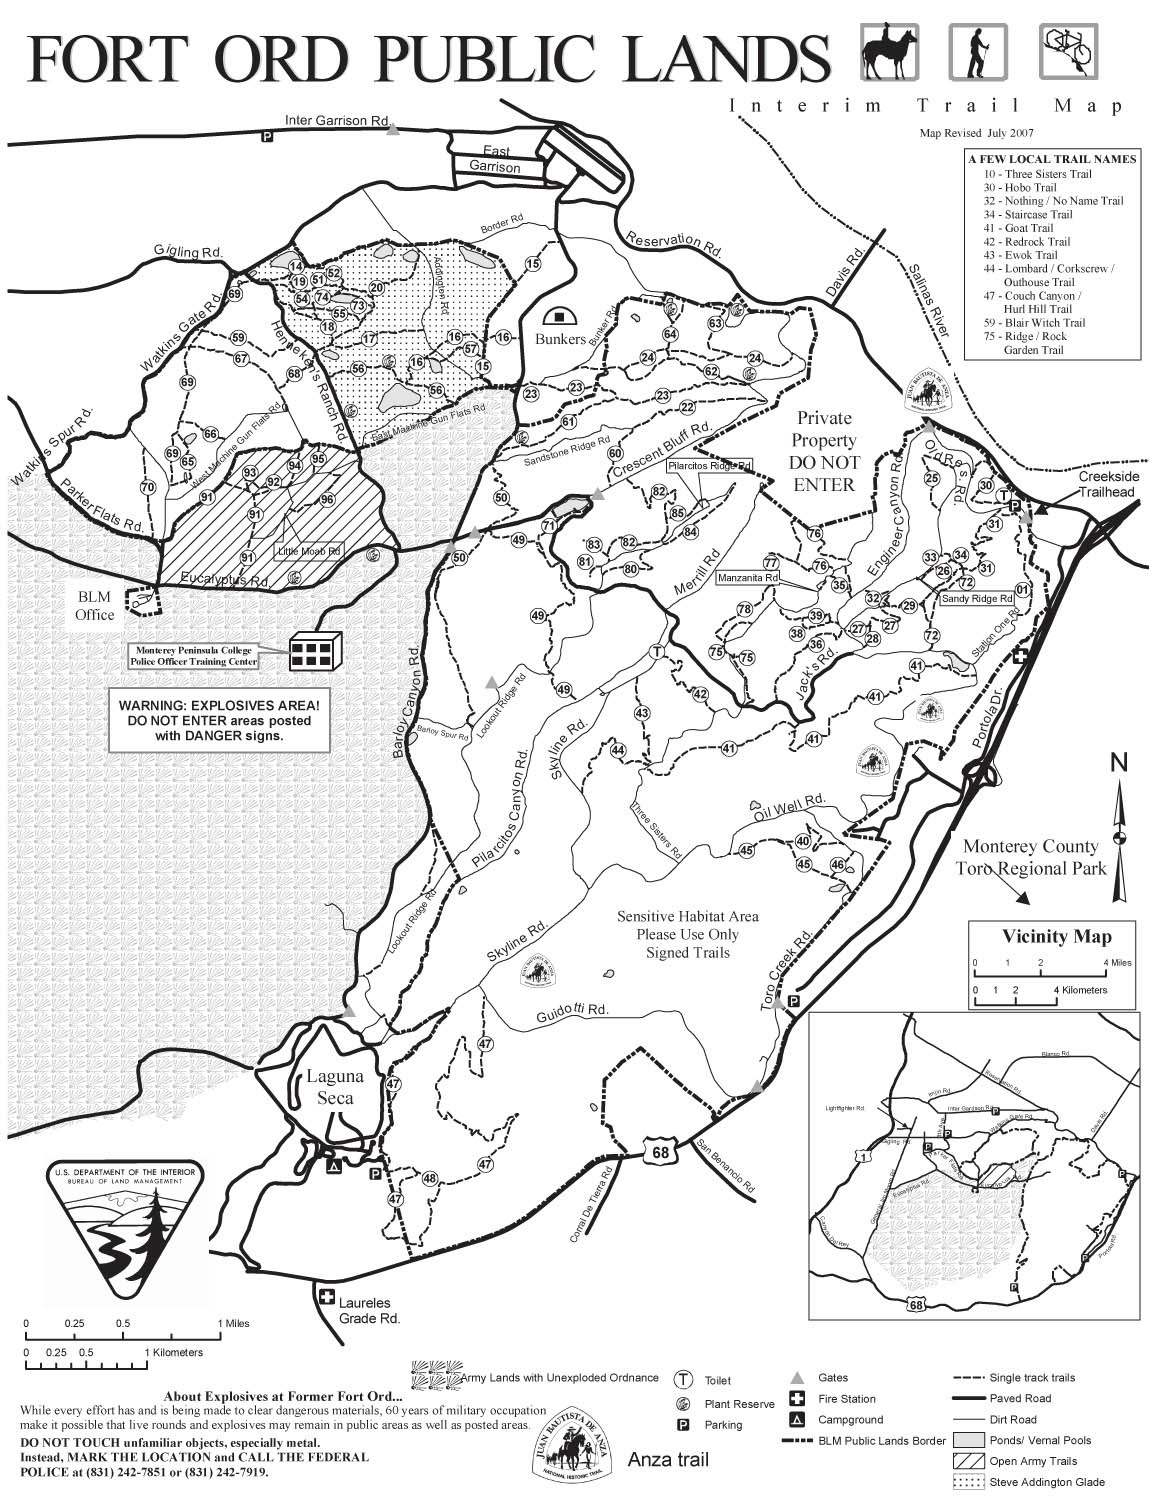 oak mountain state park trail map with Maps on Jacksonville Forest Park Trail Map together with Photo together with Sequoia National Park further Virginia Mountain Bike Trail moreover Explorando Os Bosques Da Floresta De Ashdown Inglaterra.